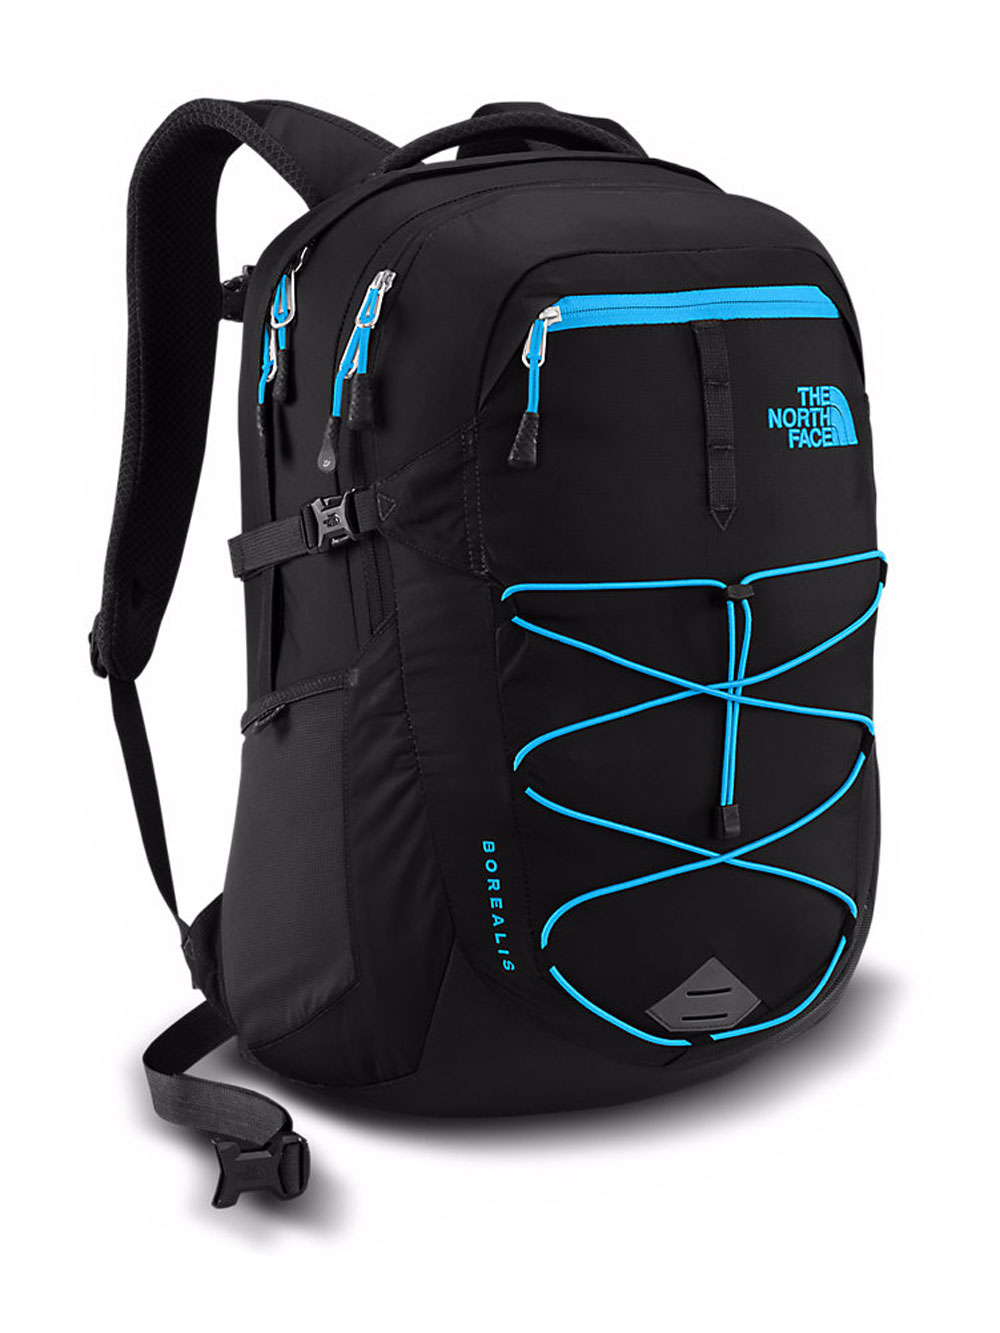 The North Face Borealis Backpack - black/hyper blue, one size